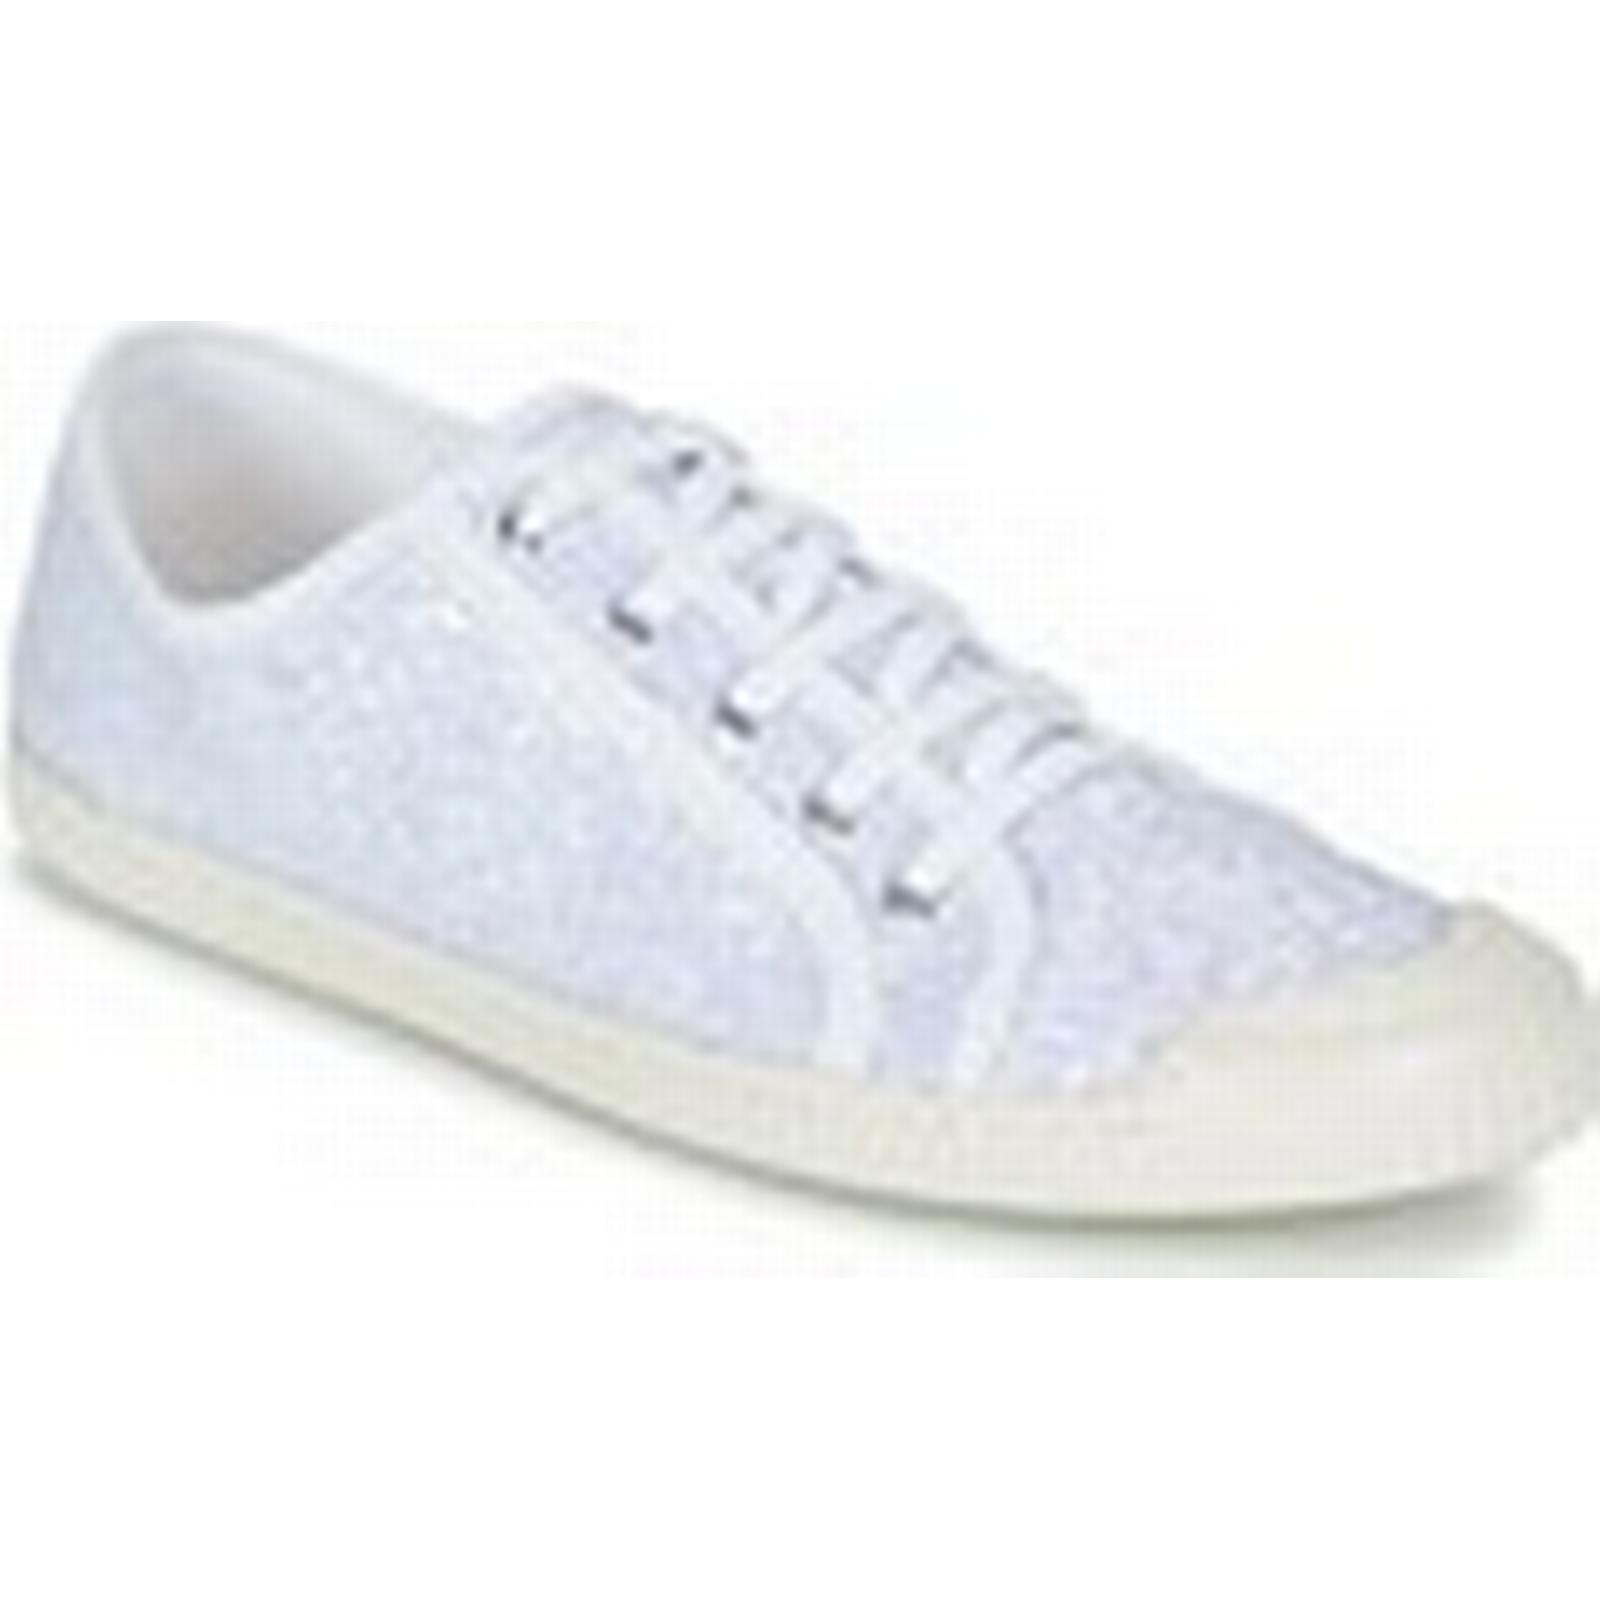 Chipie  JOBIM JOBIM   women's Shoes (Trainers) in White 0a541c